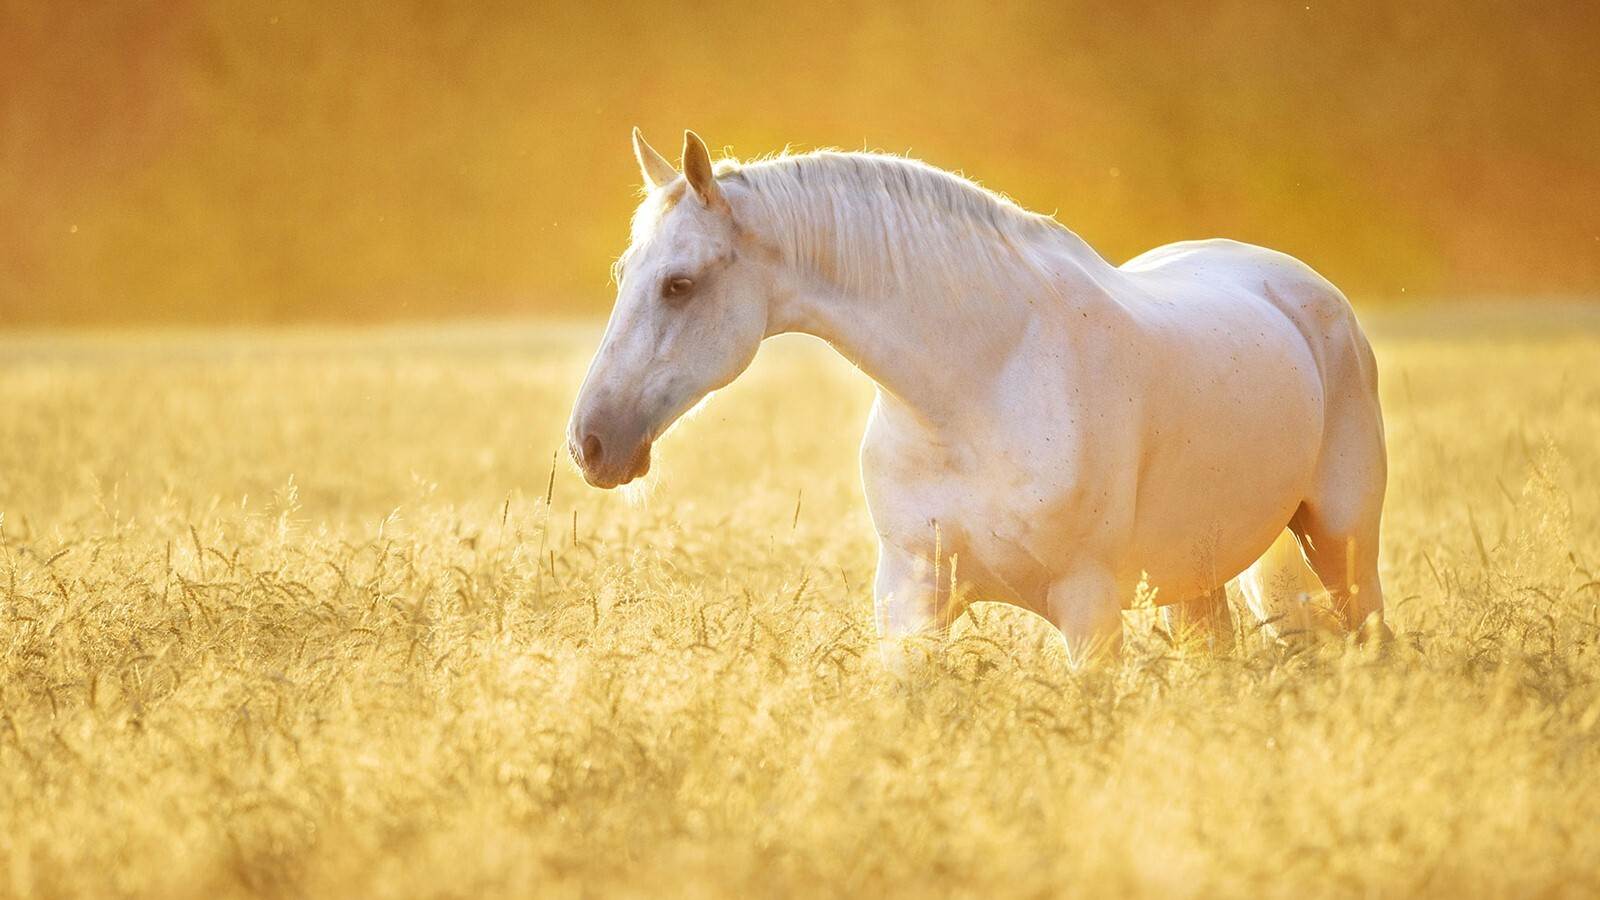 Beautiful White Horse Hd Wallpapers